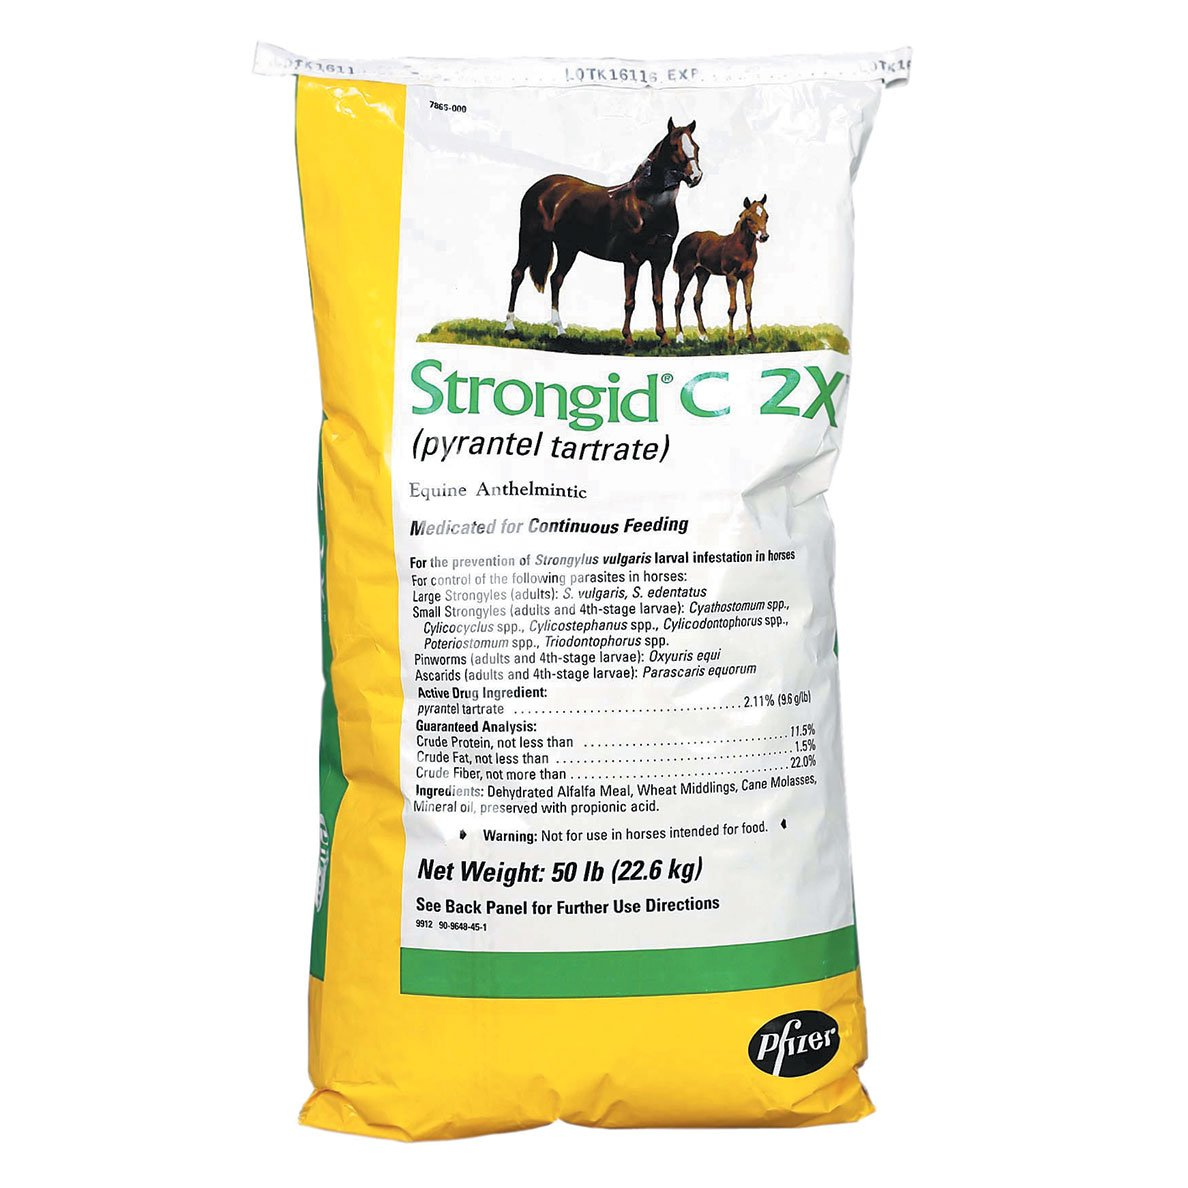 Strongid C 2X Daily Feed Pelleted Wormer 50 lb by Strongid (Image #1)